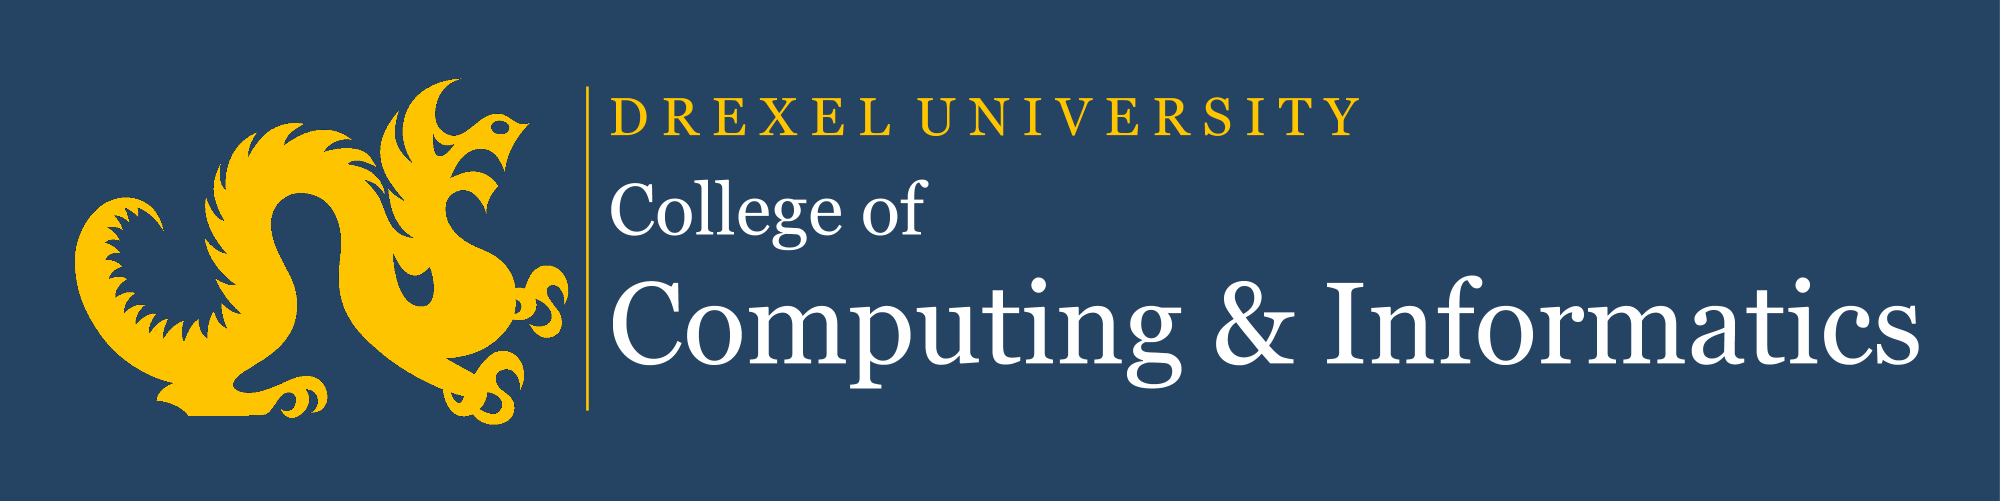 Drexel Univeristy CCI